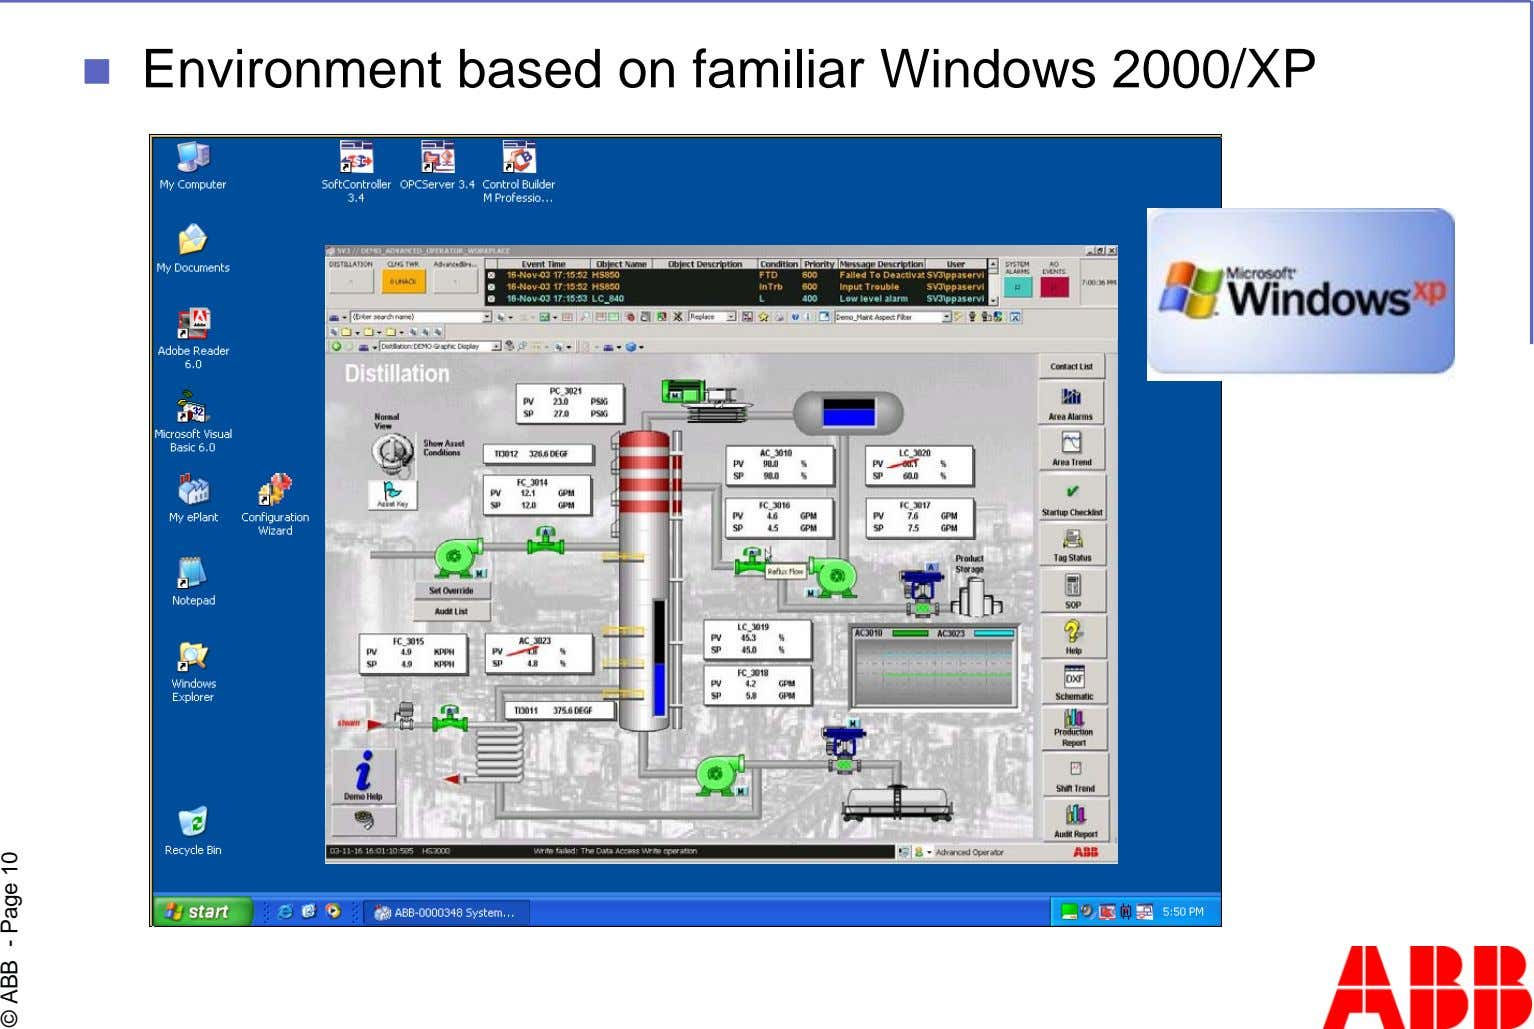 Environment based on familiar Windows 2000/XP © ABB - Page 10